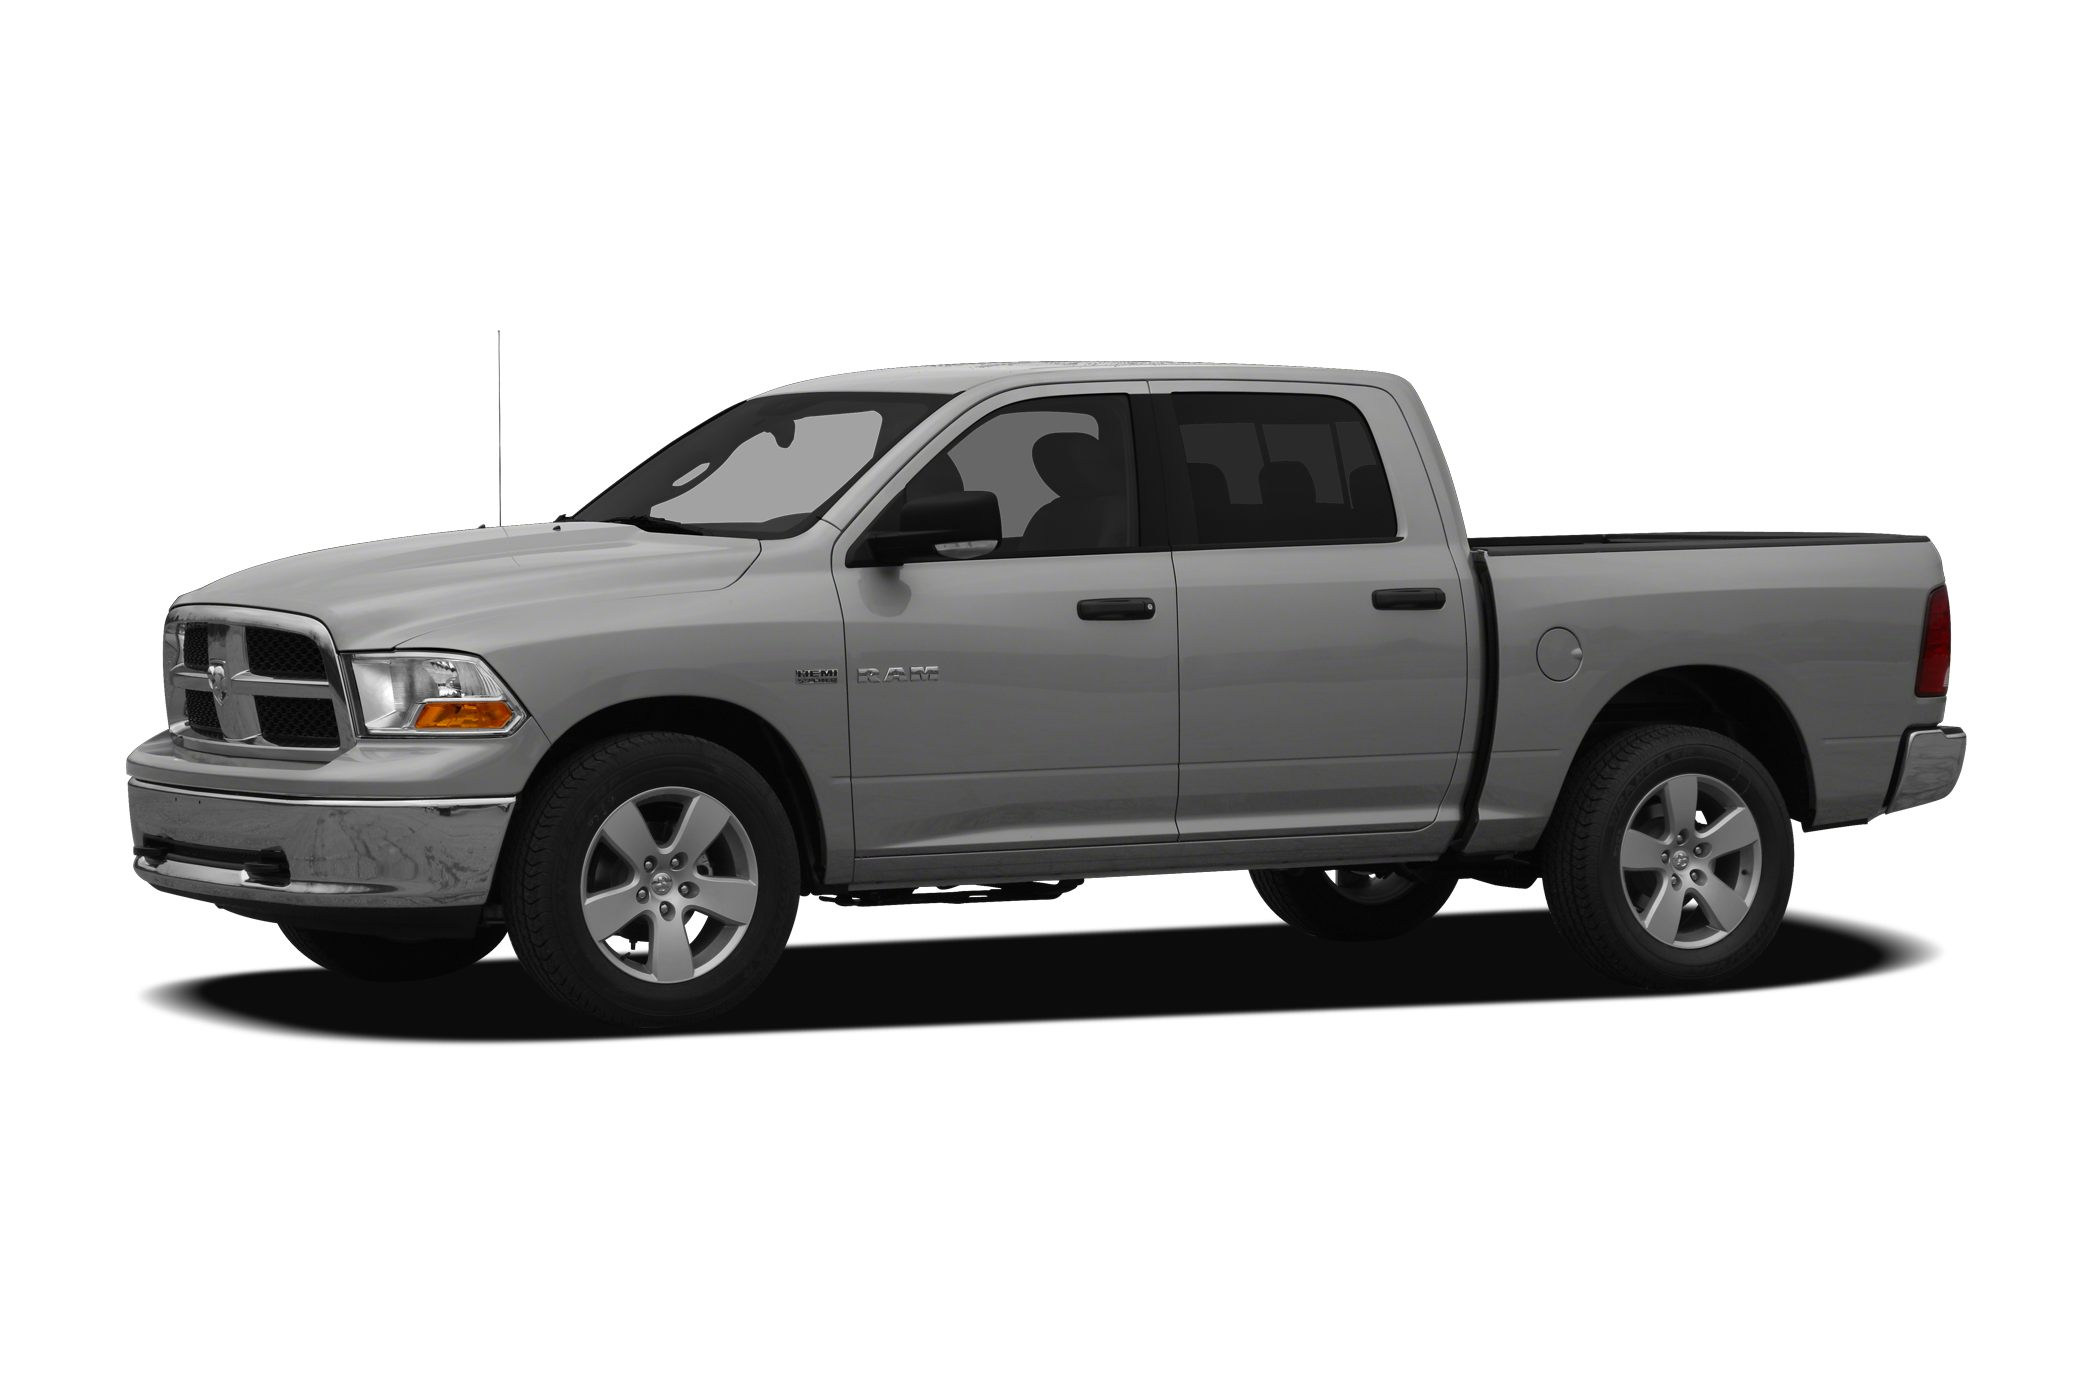 2011 Dodge Ram 1500 SLT Miles 49979Stock RP1043 VIN 1D7RB1CP5BS634577